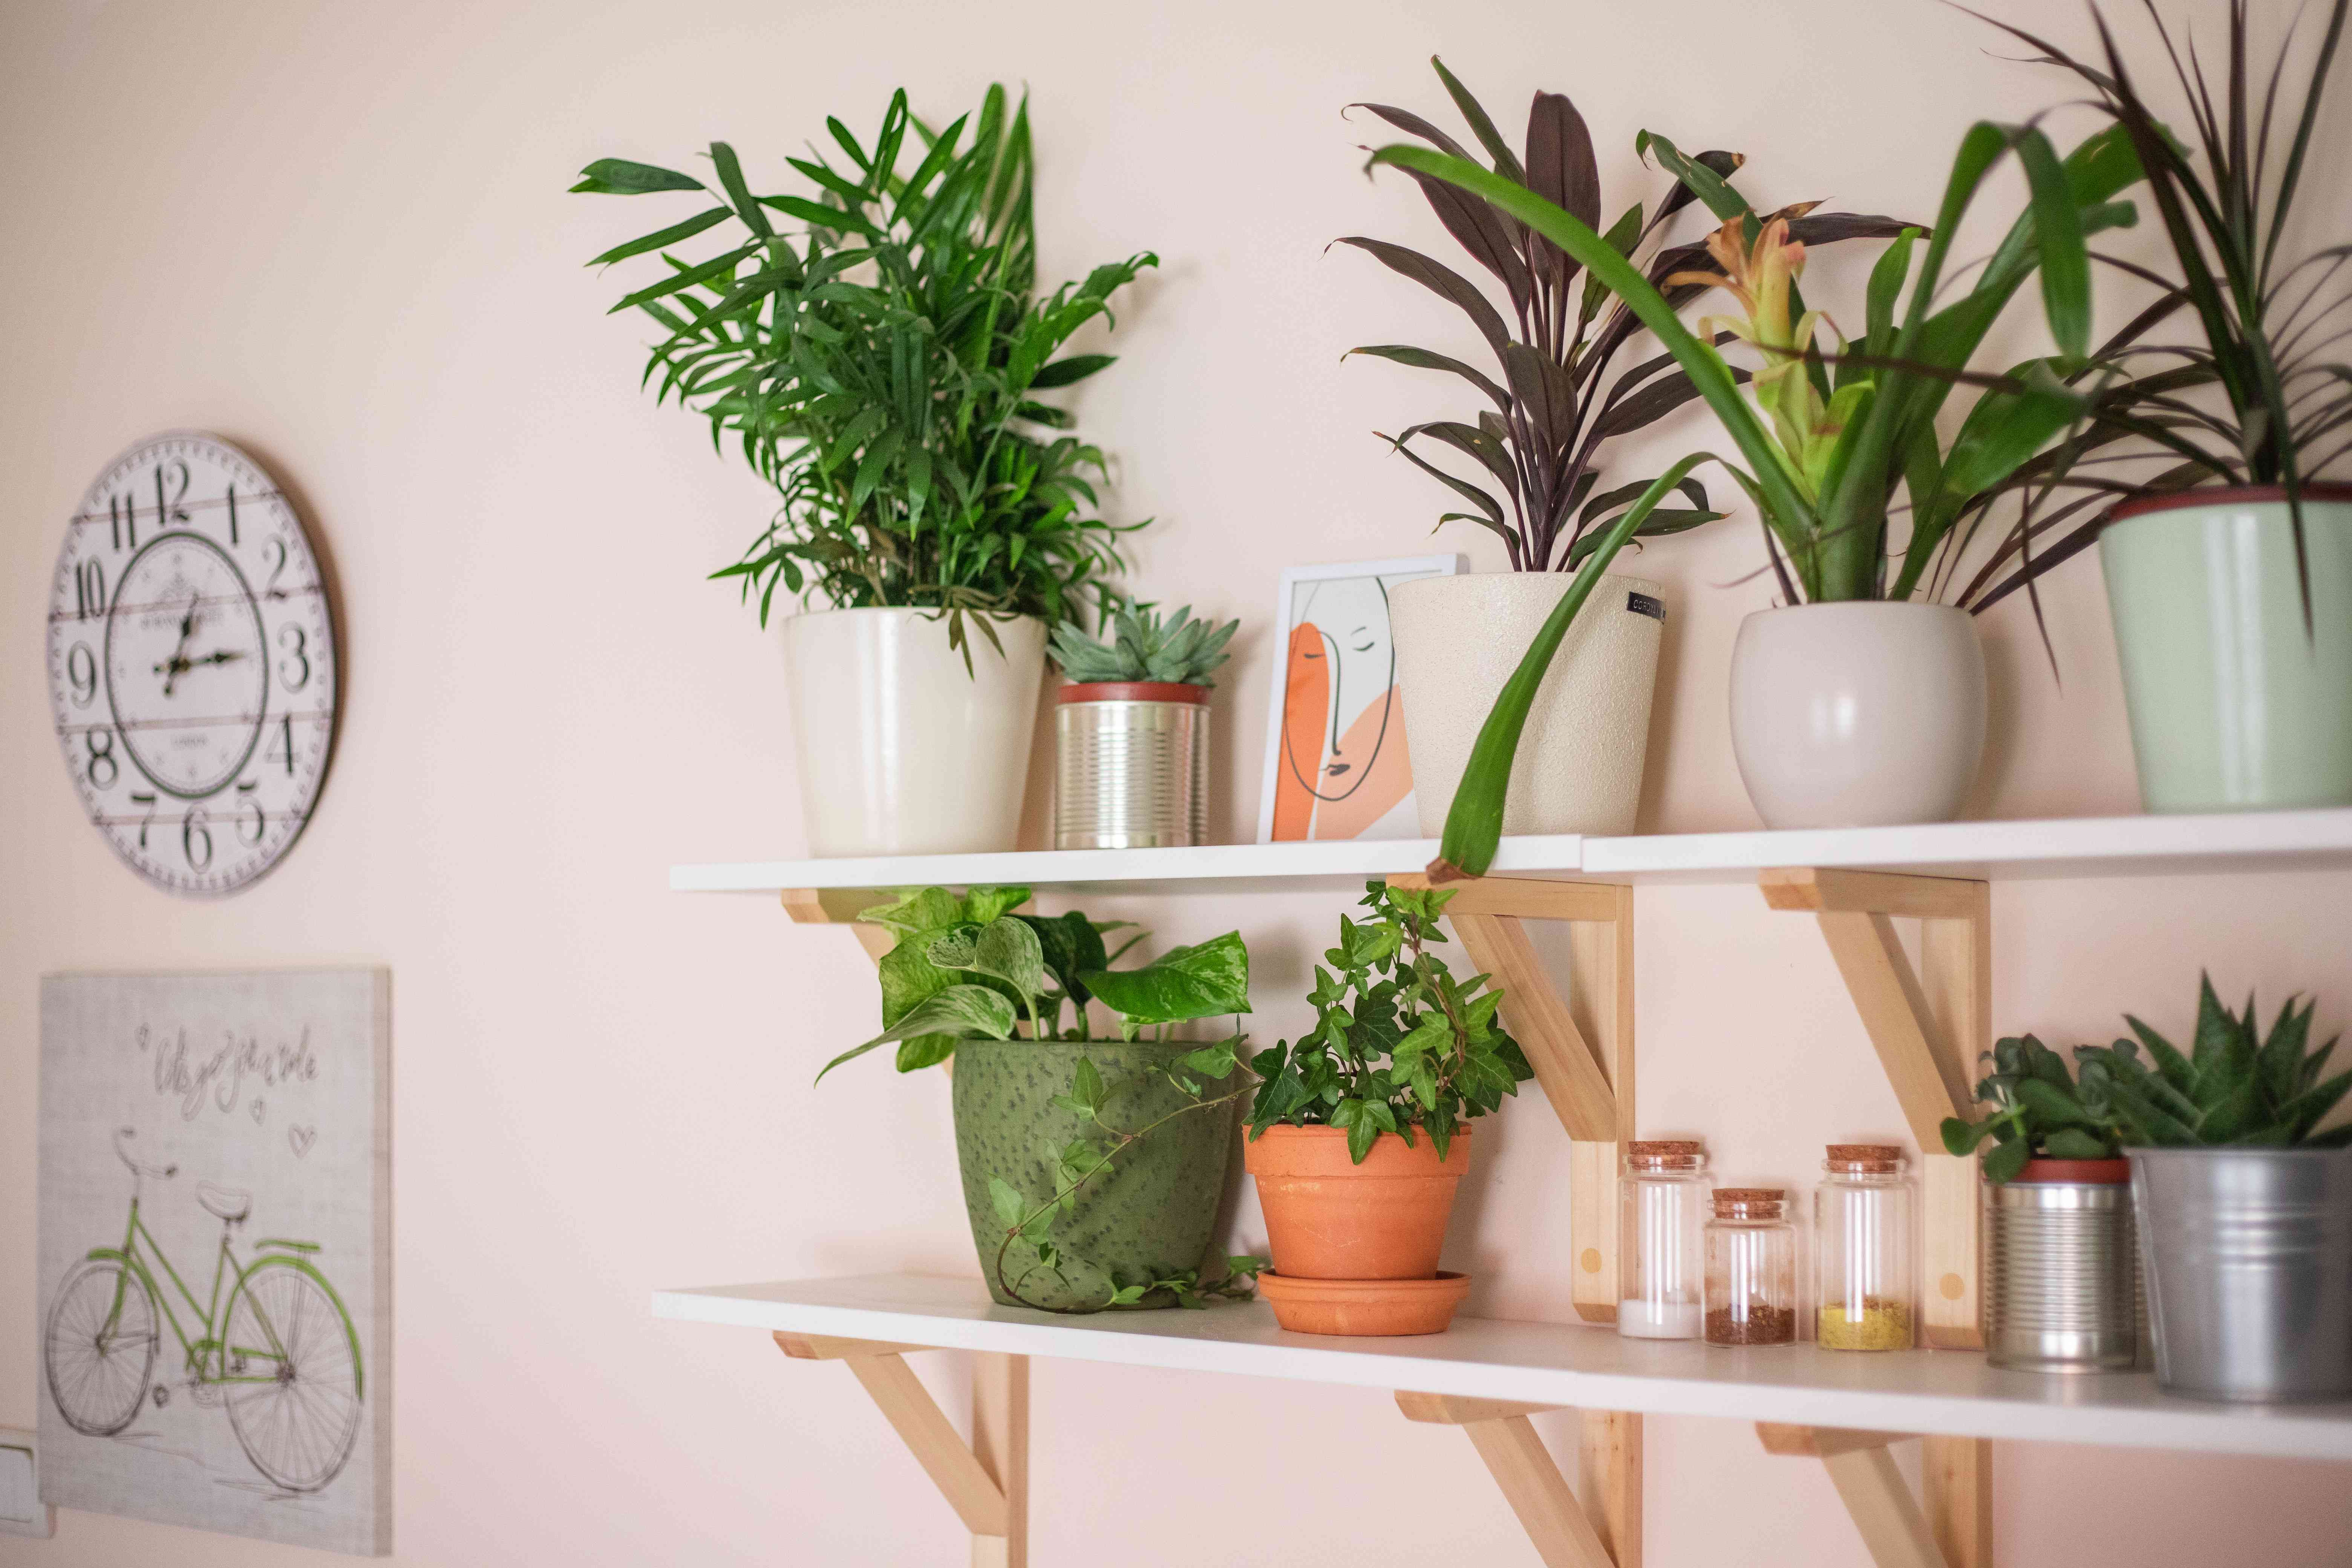 floating shelves filled with assortment of house plants, art, and dry goods